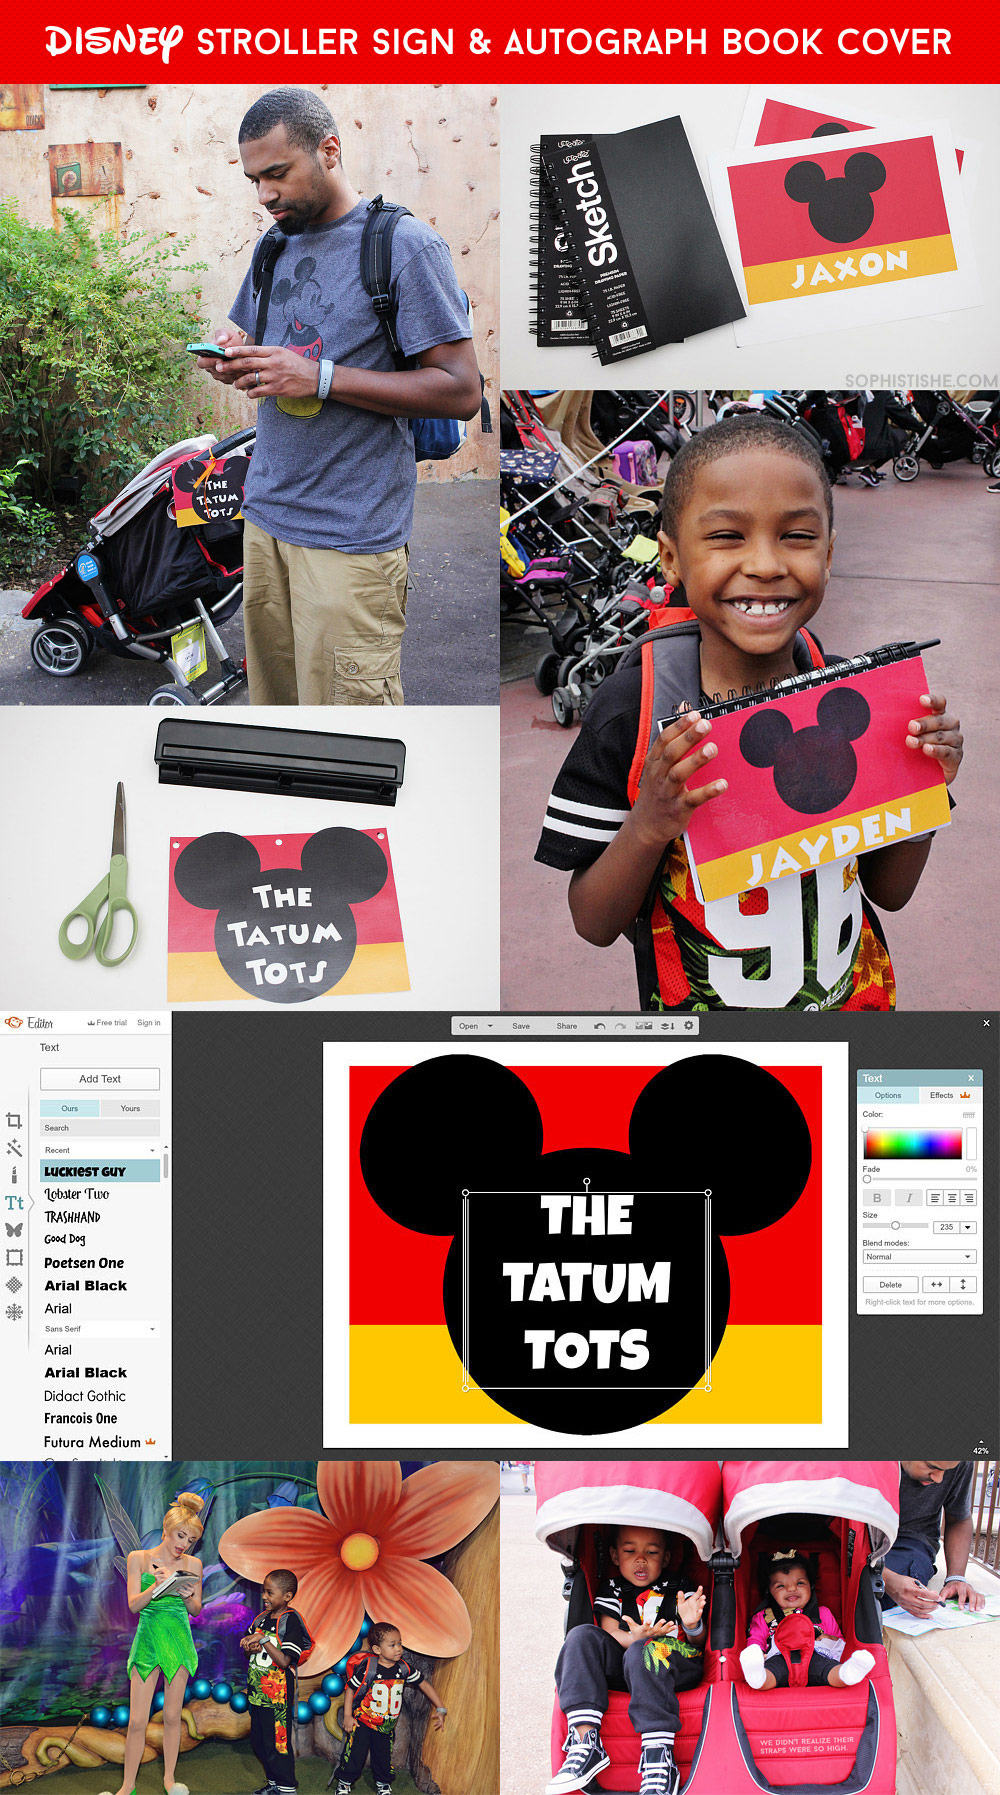 DIY Disney World Autograph Book & Stroller Sign - stand out during your Disney vacation!